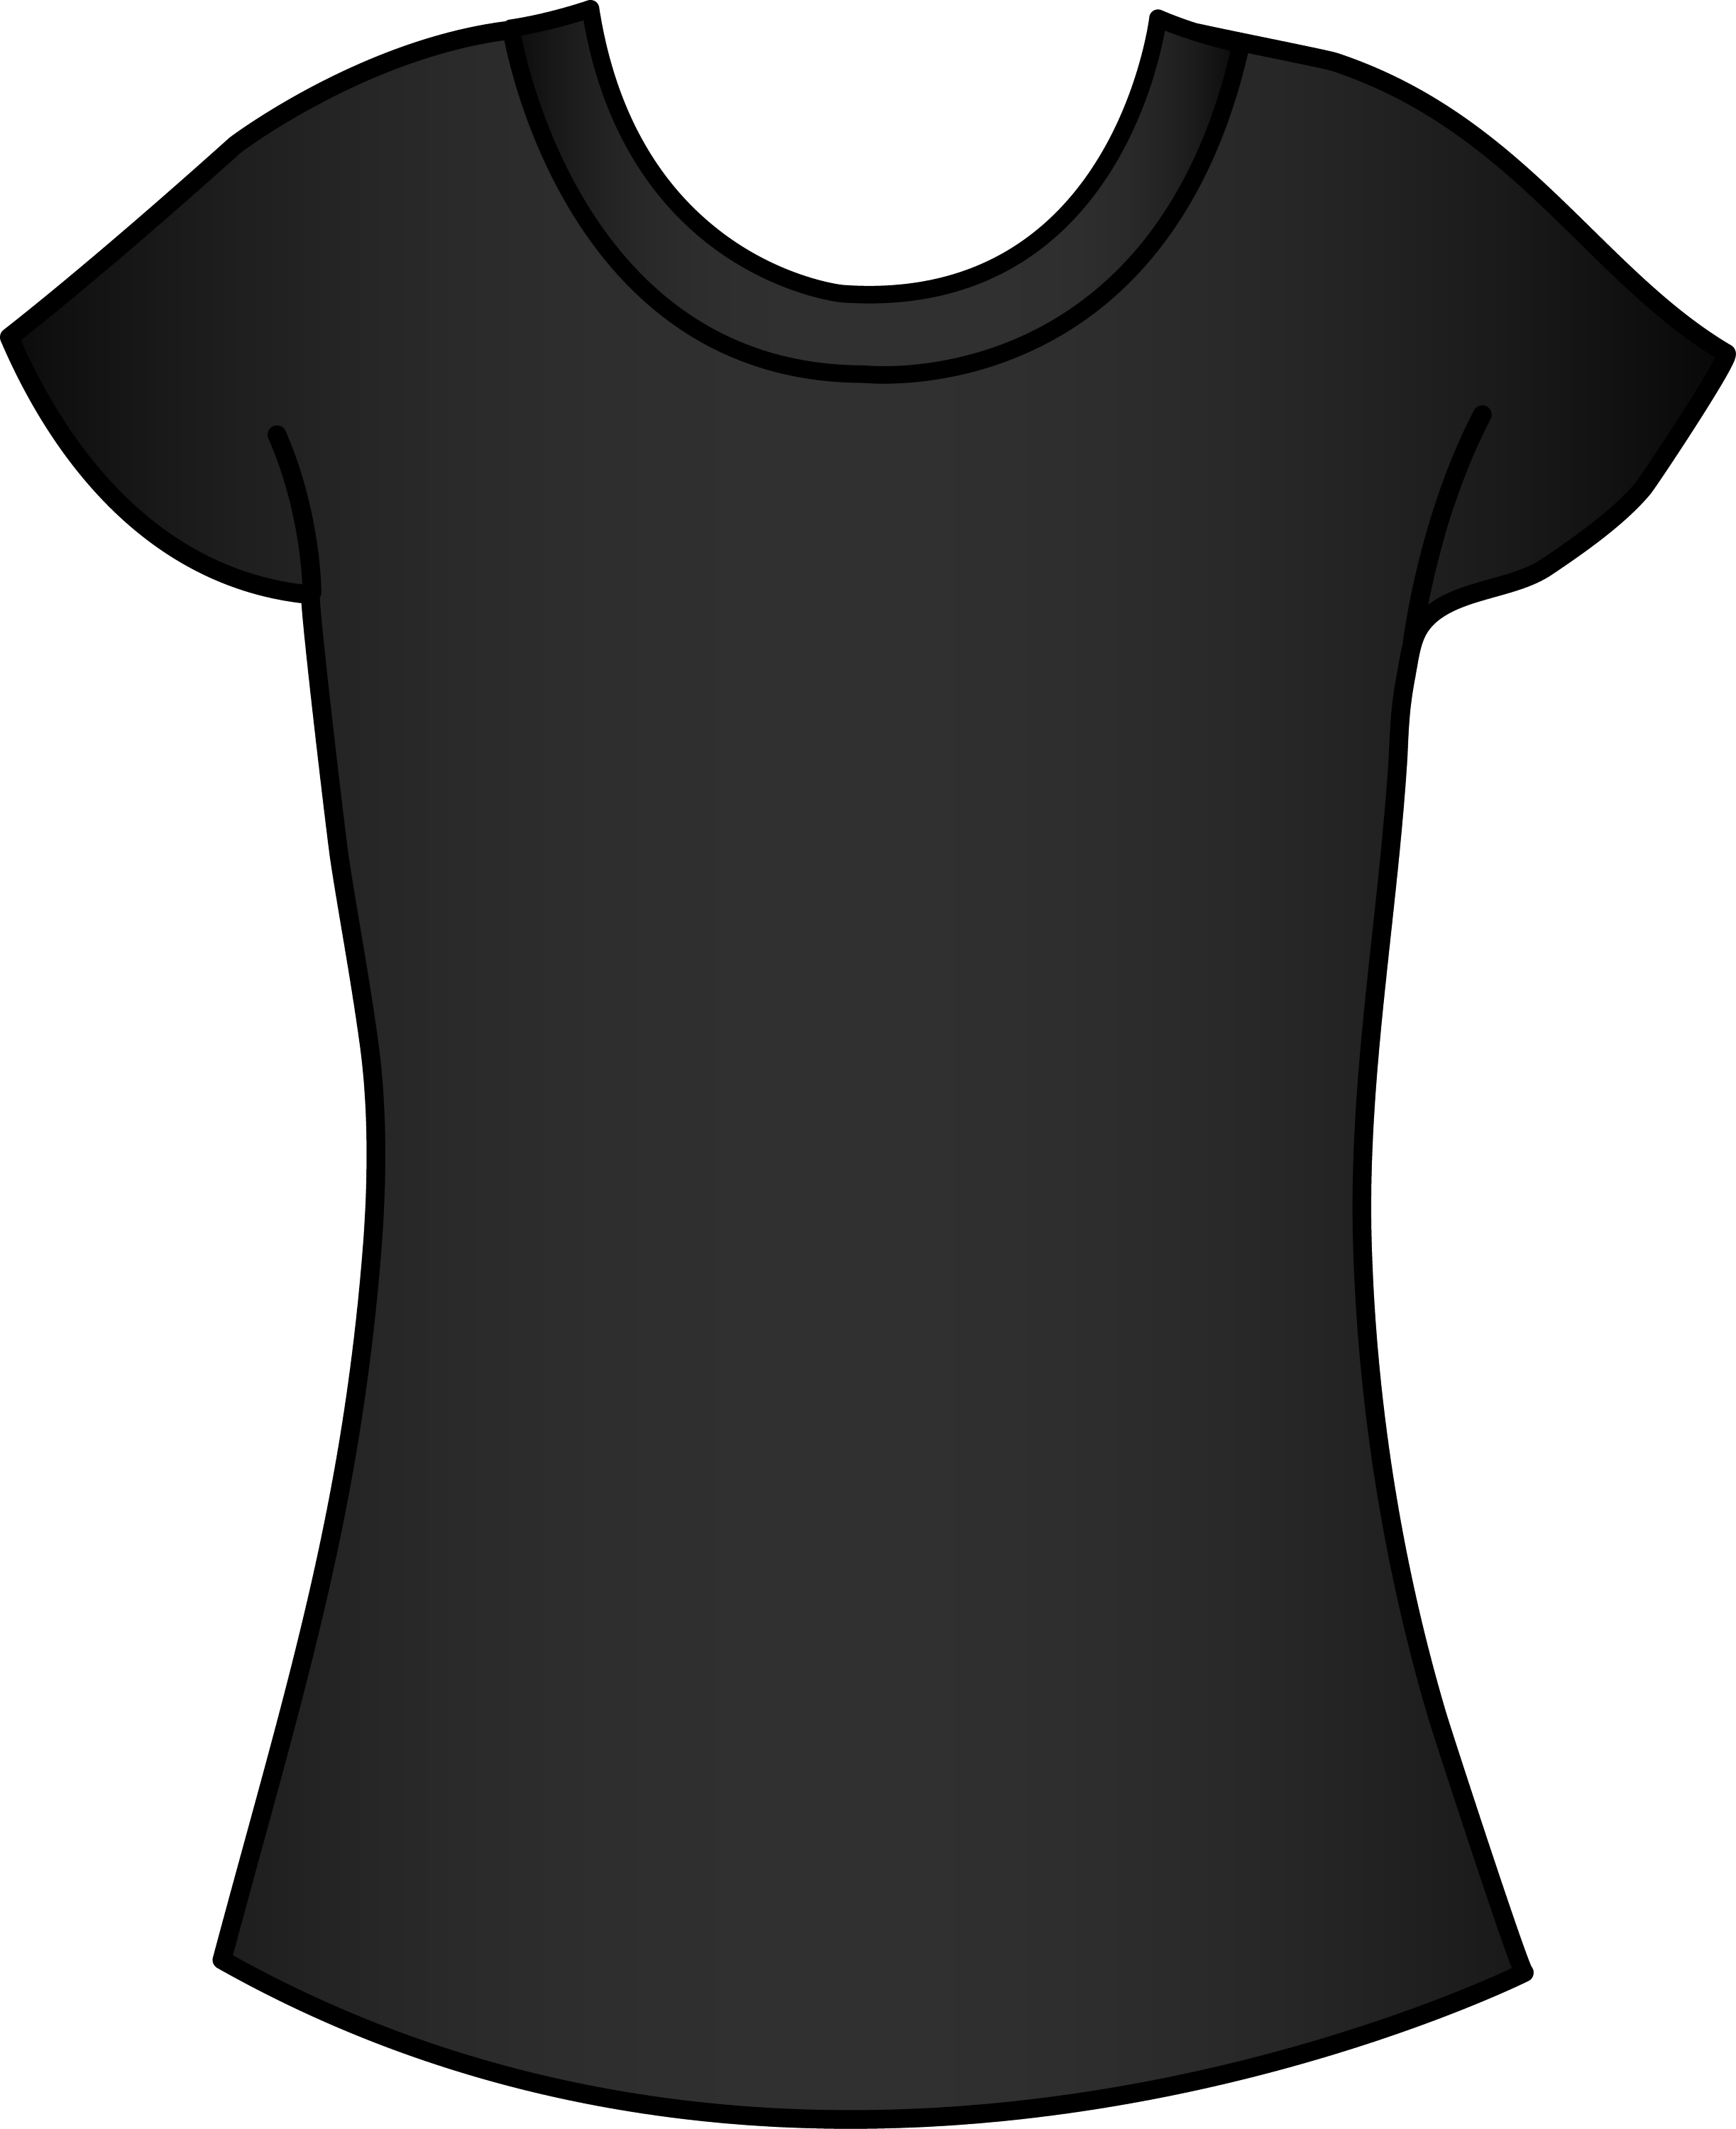 Black t shirt model template - Womens Black Tee Template